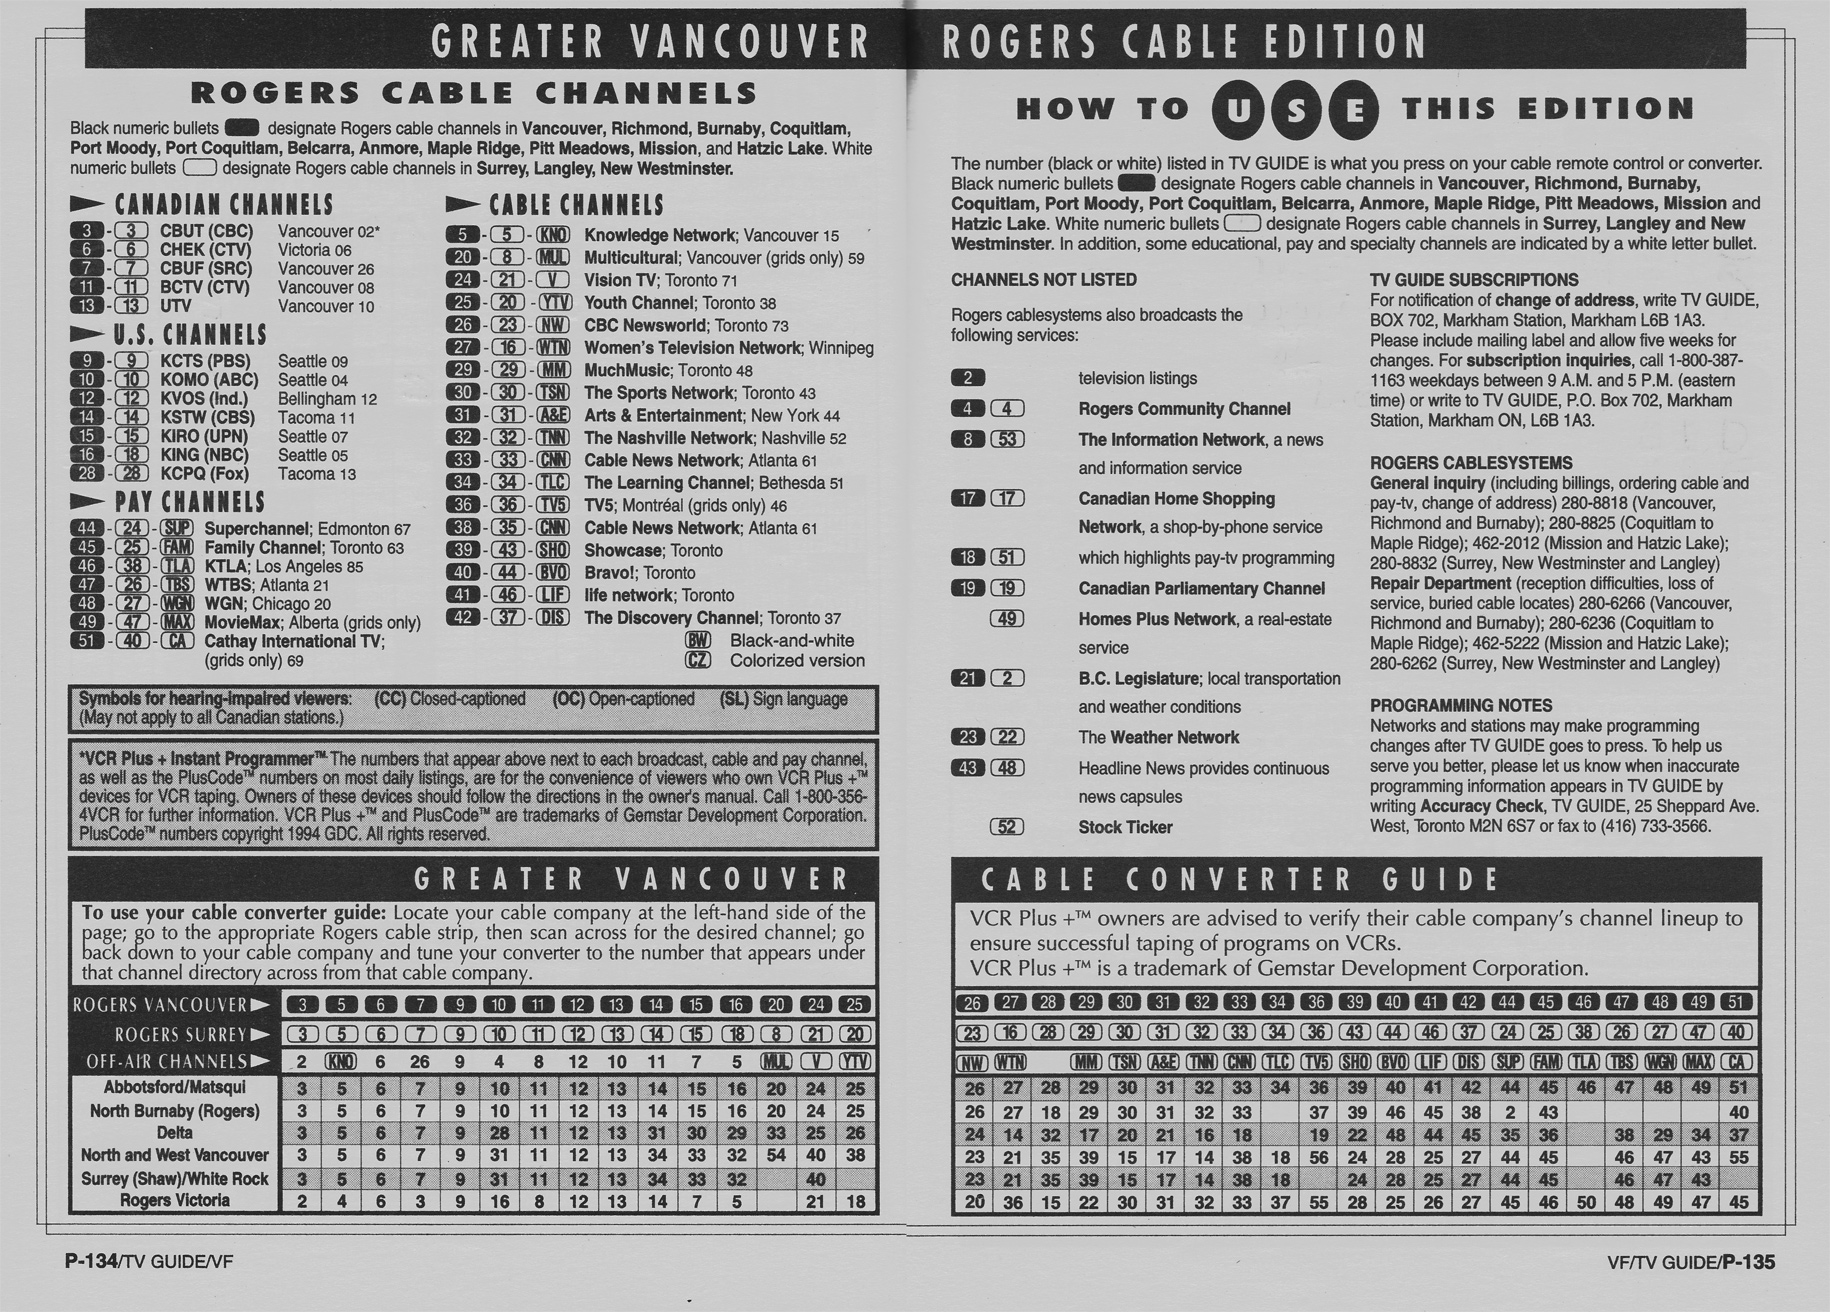 TV Guide March 11 1995 Vancouver Rogers Cable Edition Cable Converter Guide